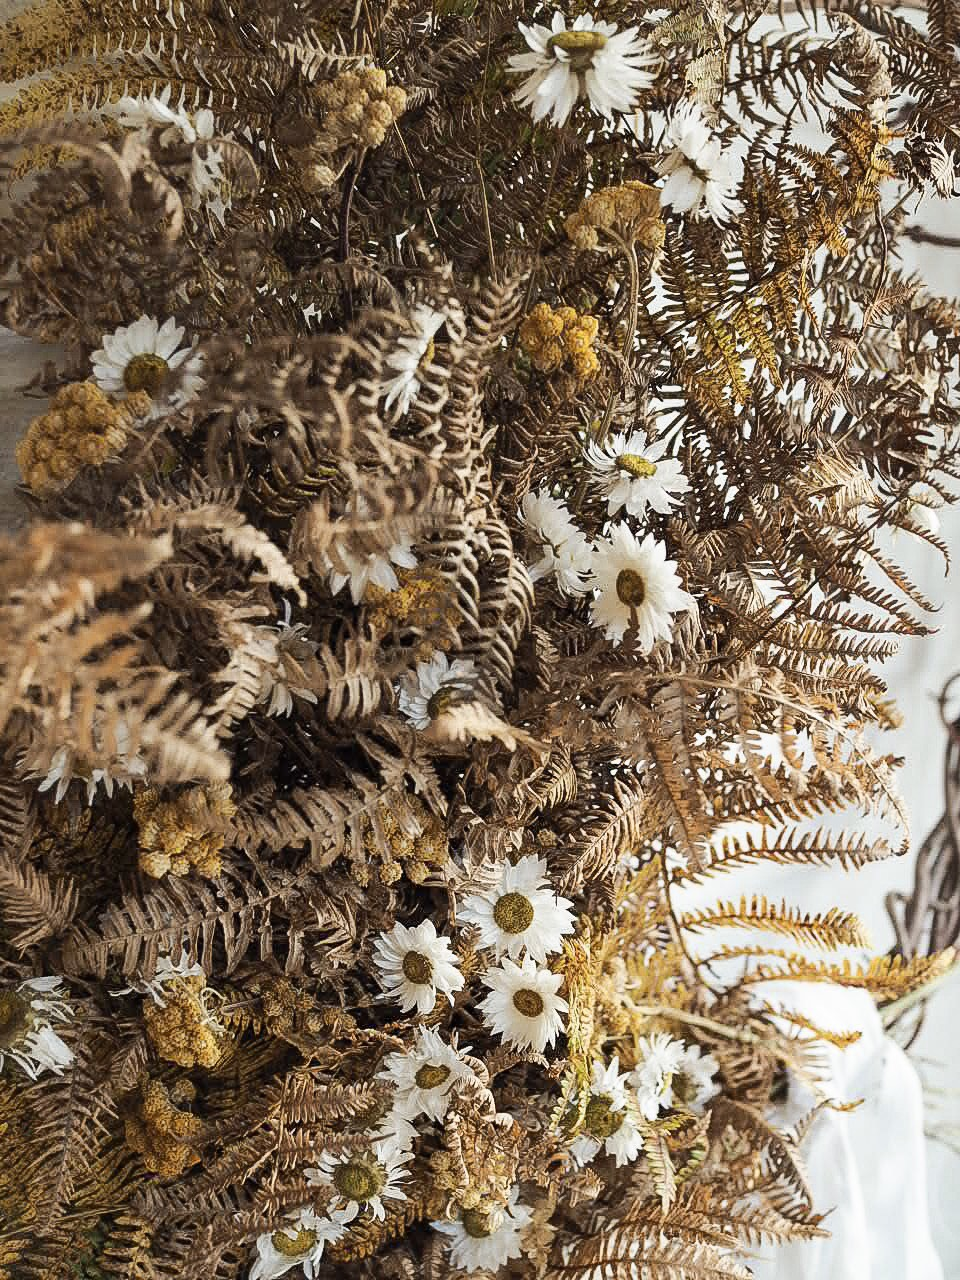 perfect materials to make wreaths with